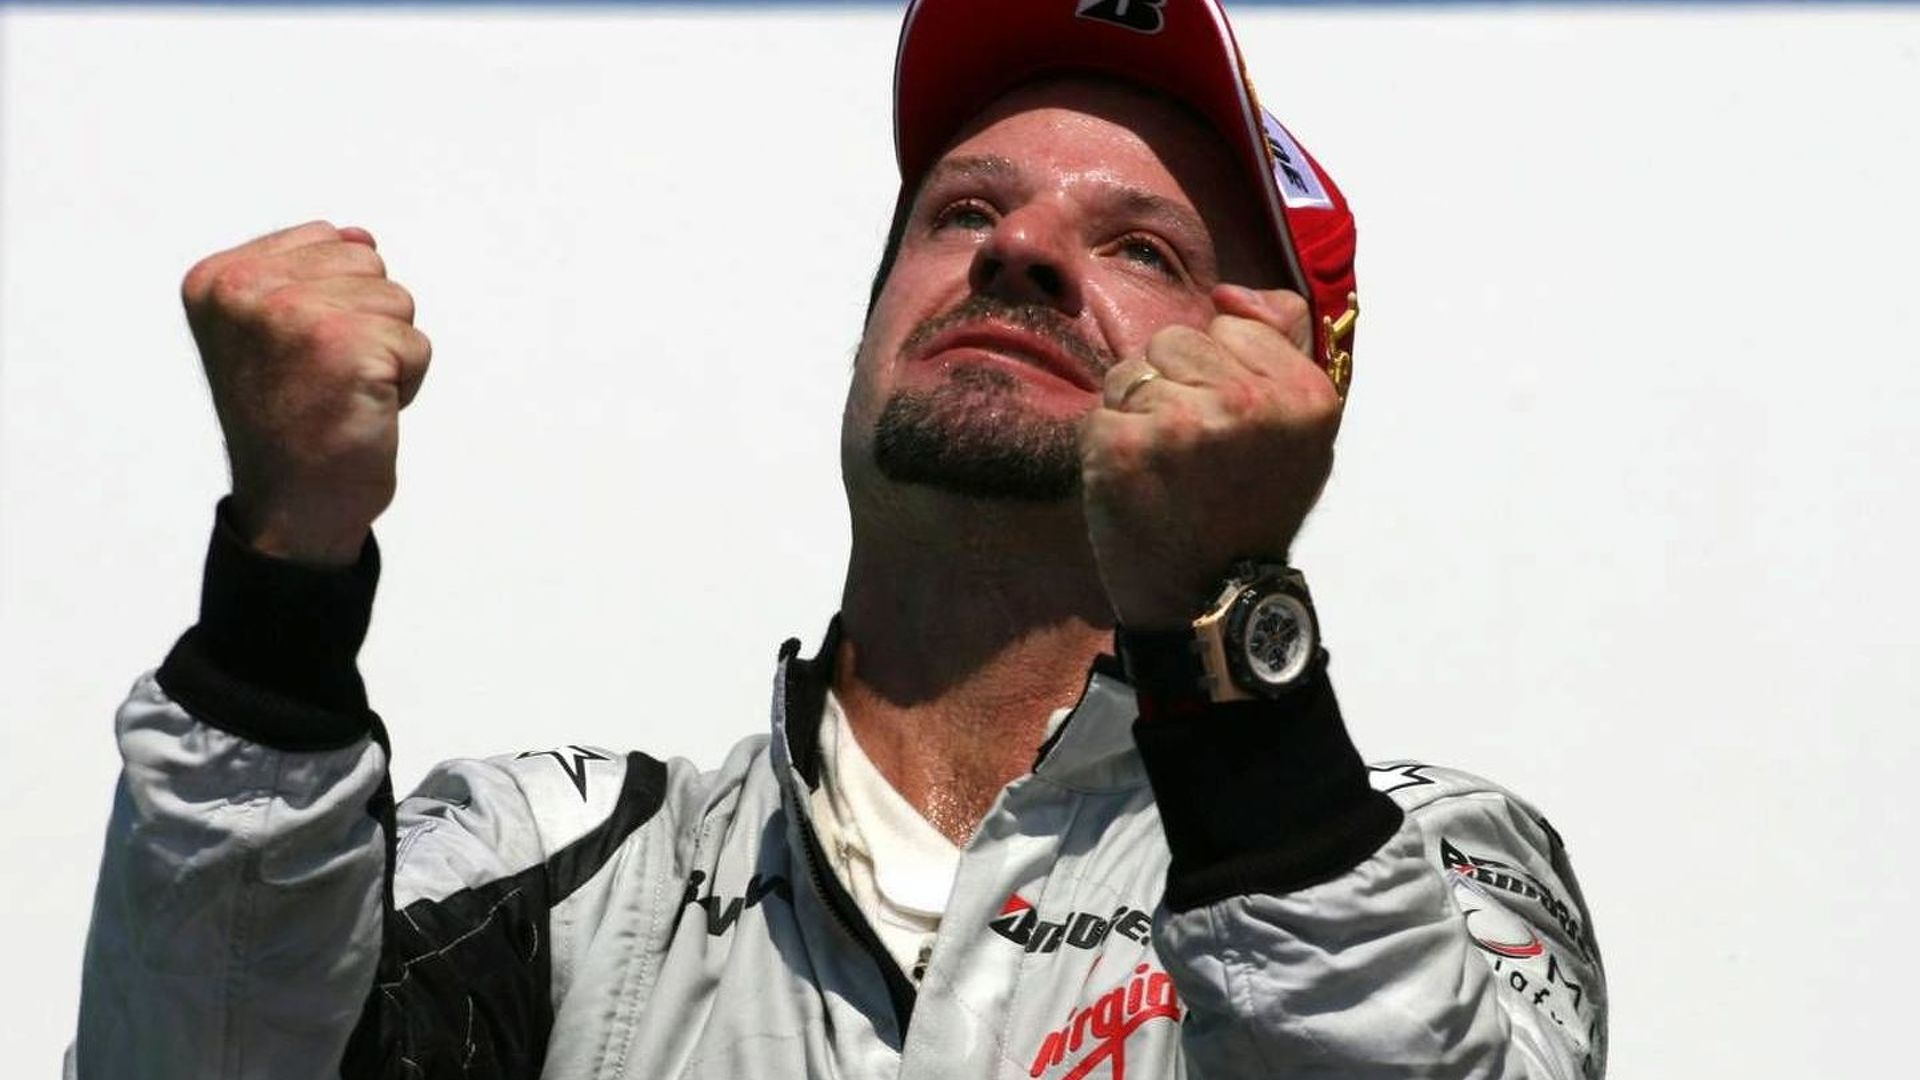 Barrichello denies saying title 'closer than ever'